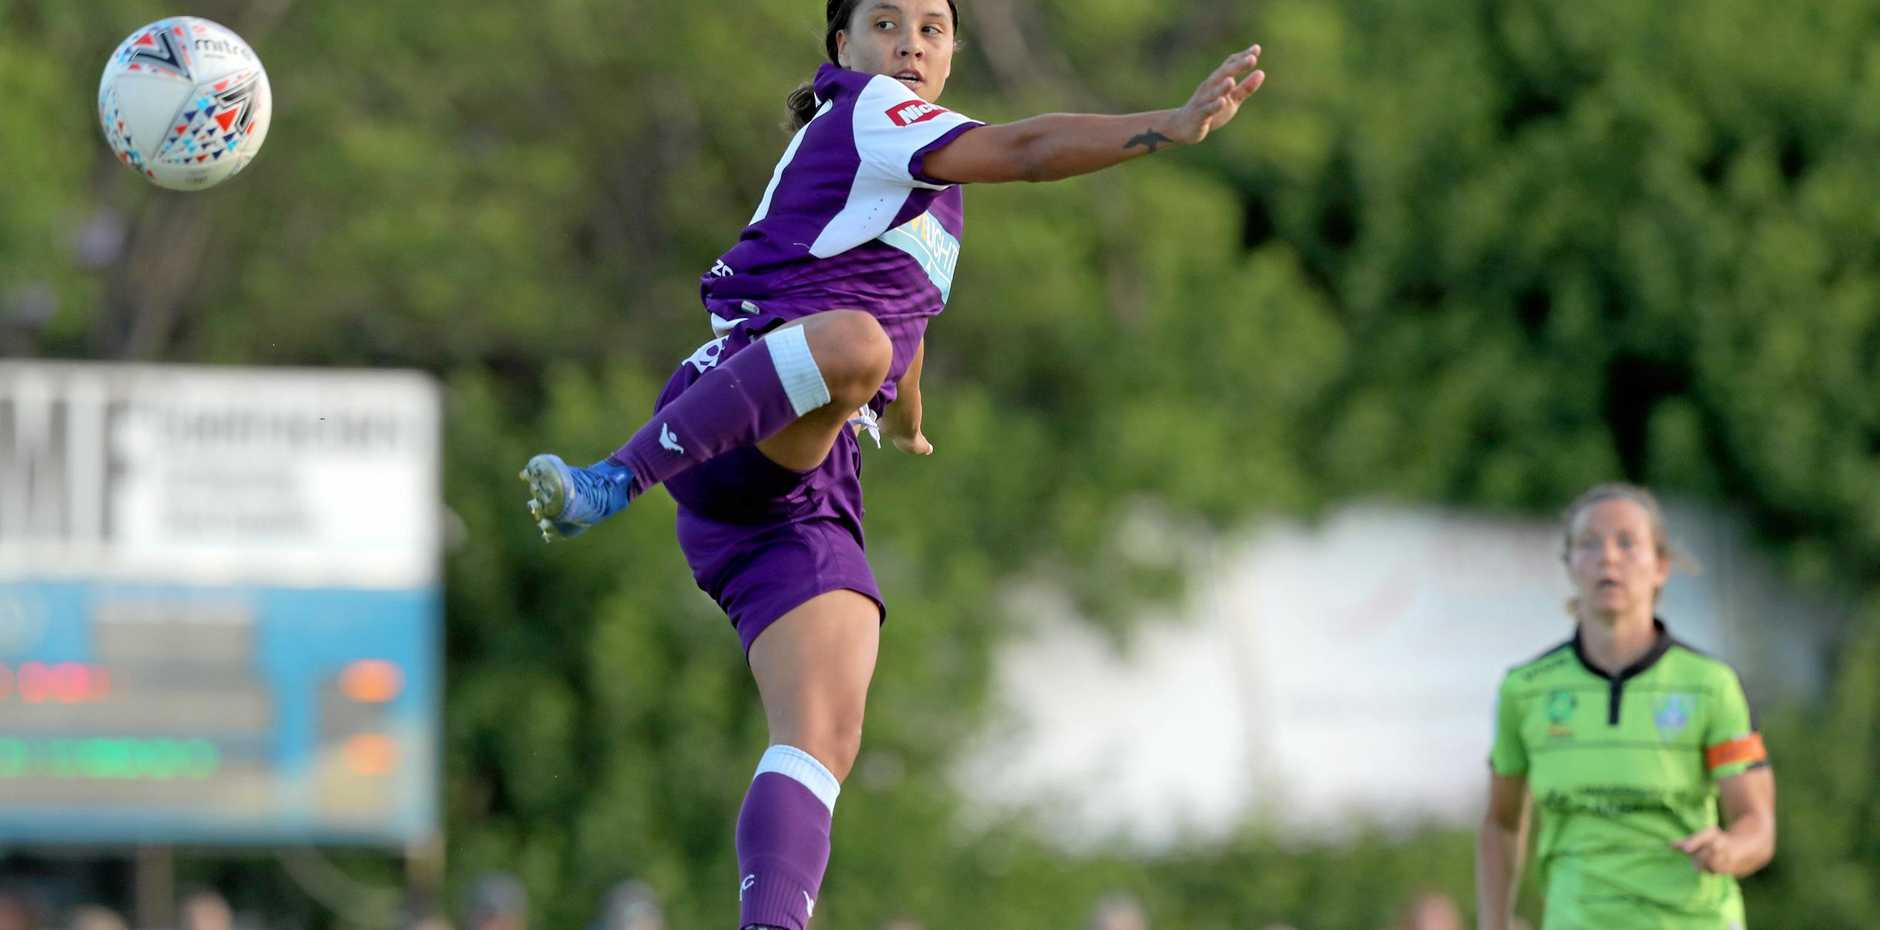 Samantha Kerr in action for Peth Glory against Canberra United early this year in Perth. Picture: Richard Wainwright/AAP